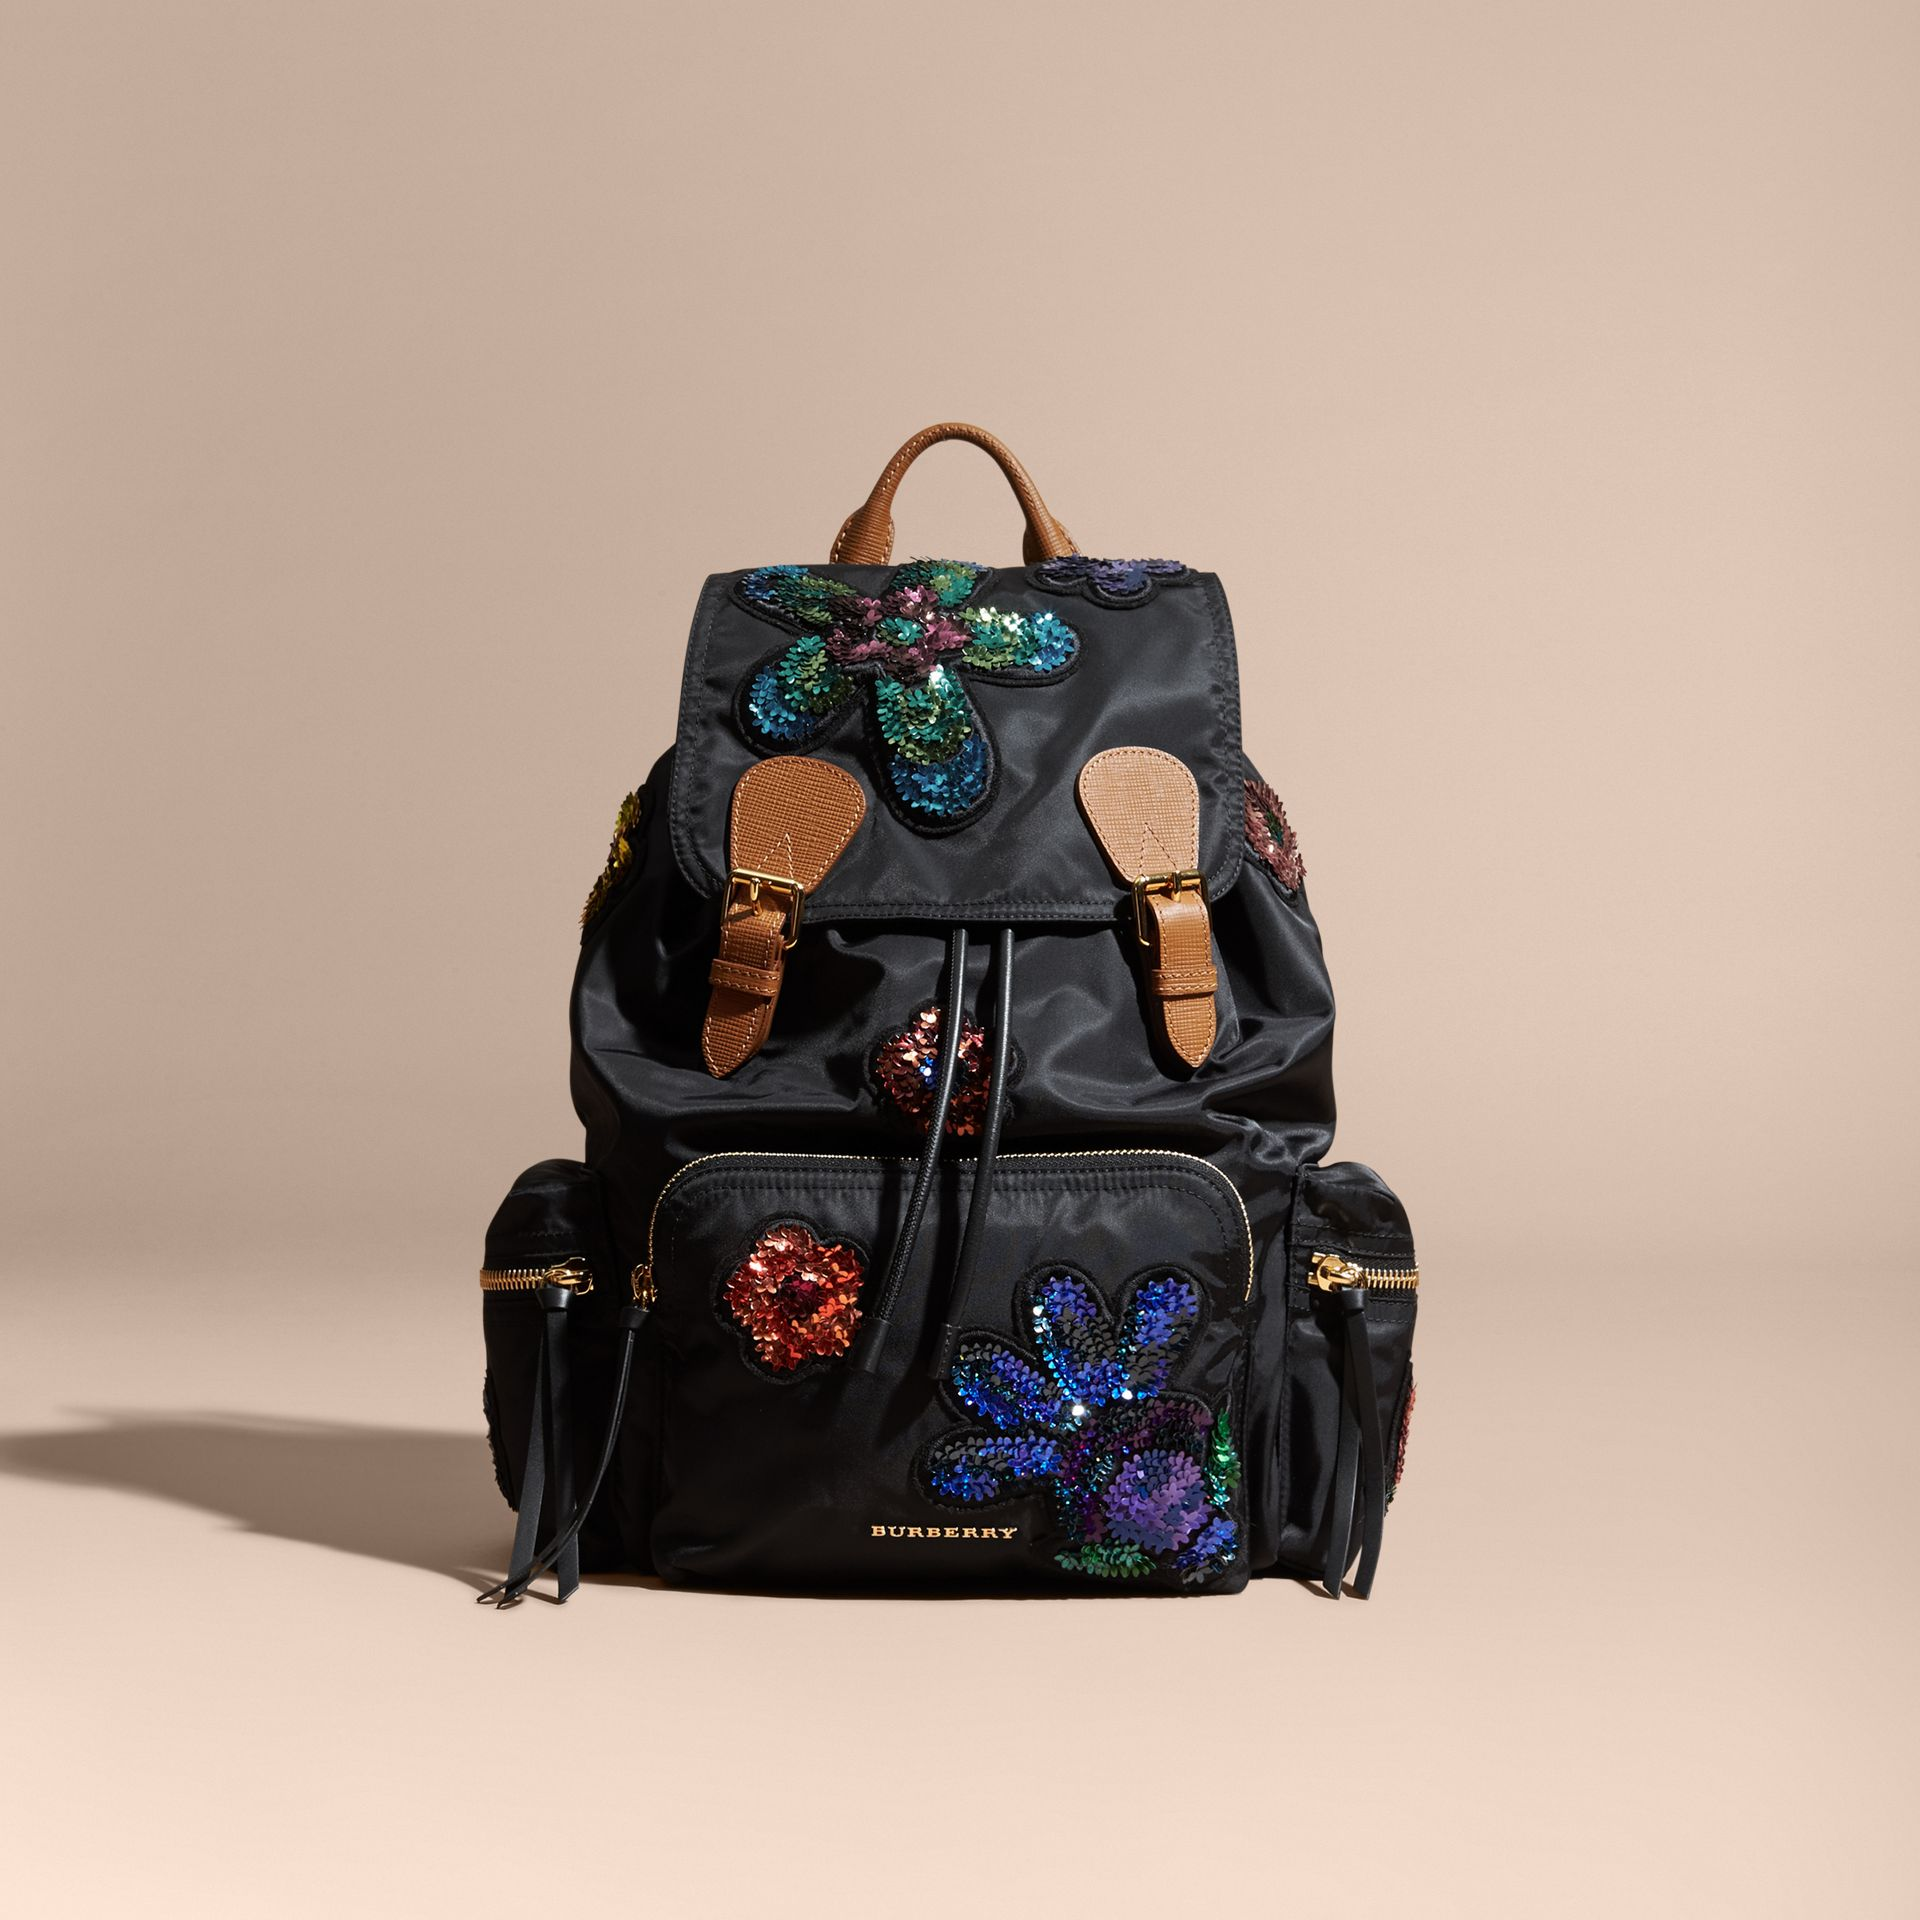 Noir Grand sac The Rucksack en nylon technique avec sequins à motif floral - photo de la galerie 8